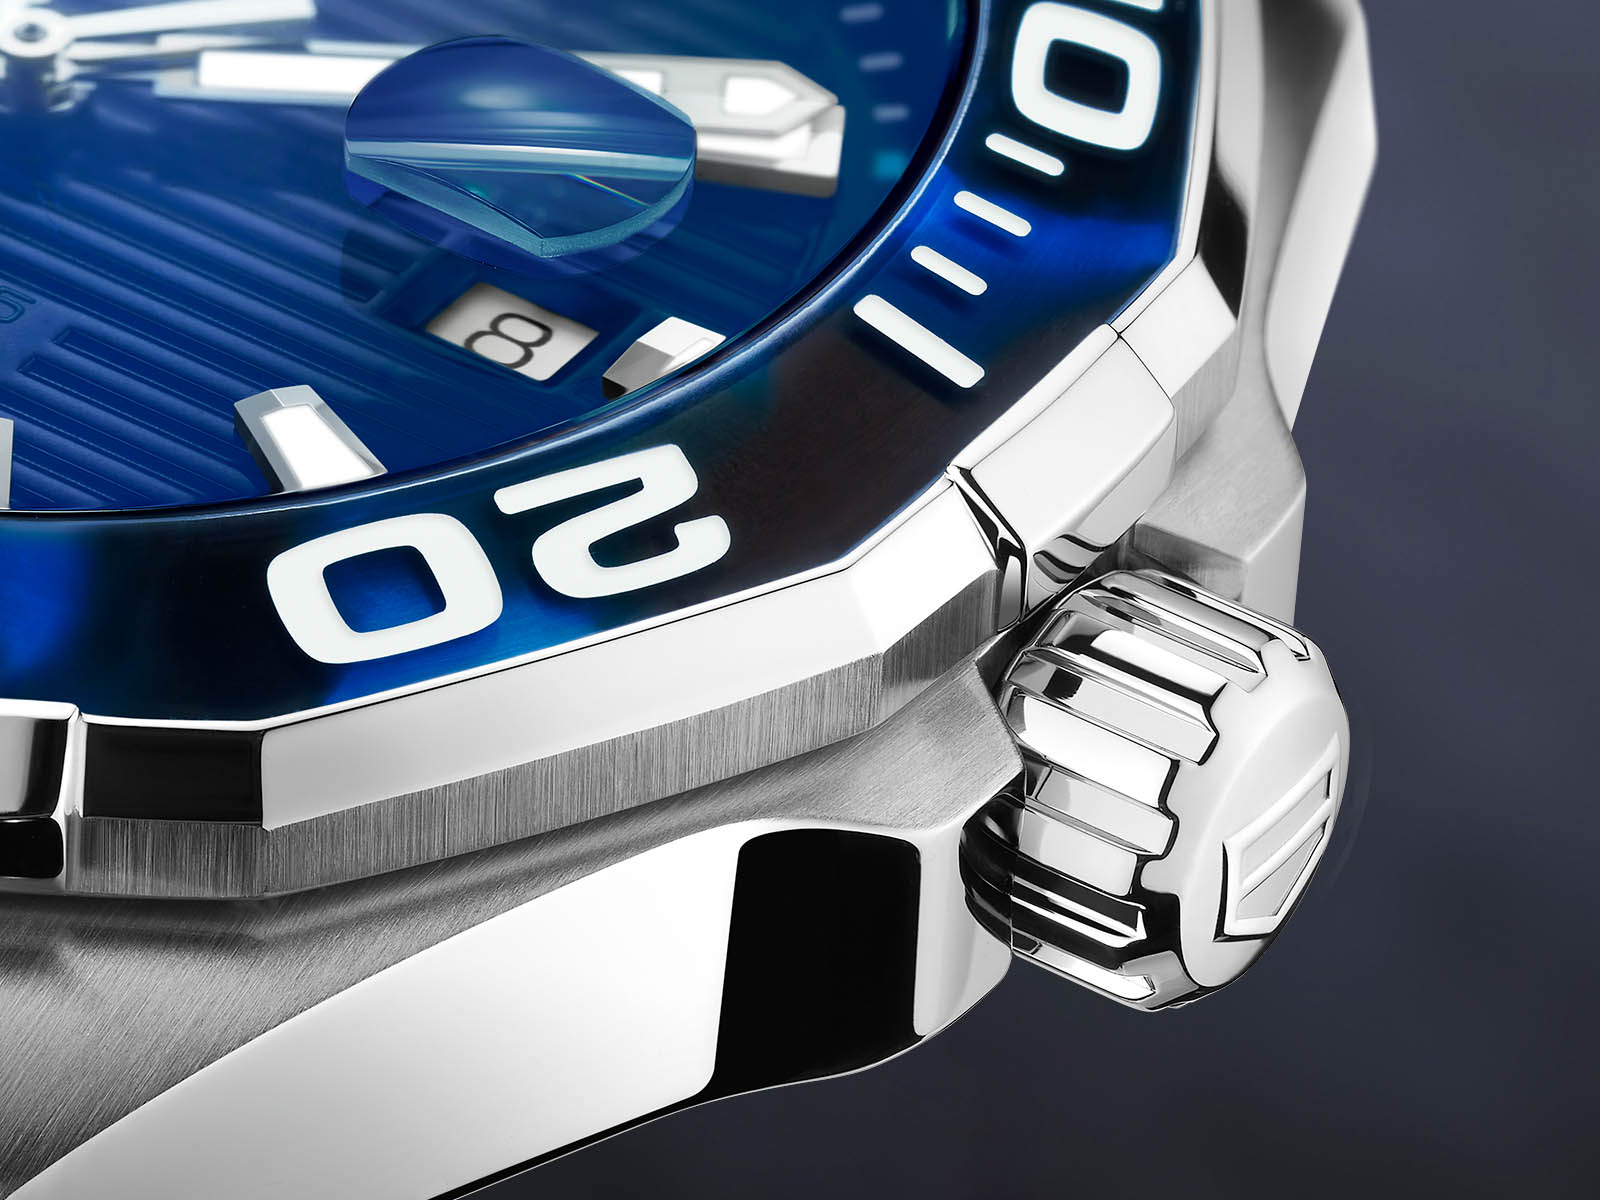 way201p-ft6178-tag-heuer-aquaracer-tortoise-shell-effect-blue-calibre-5-2.jpg